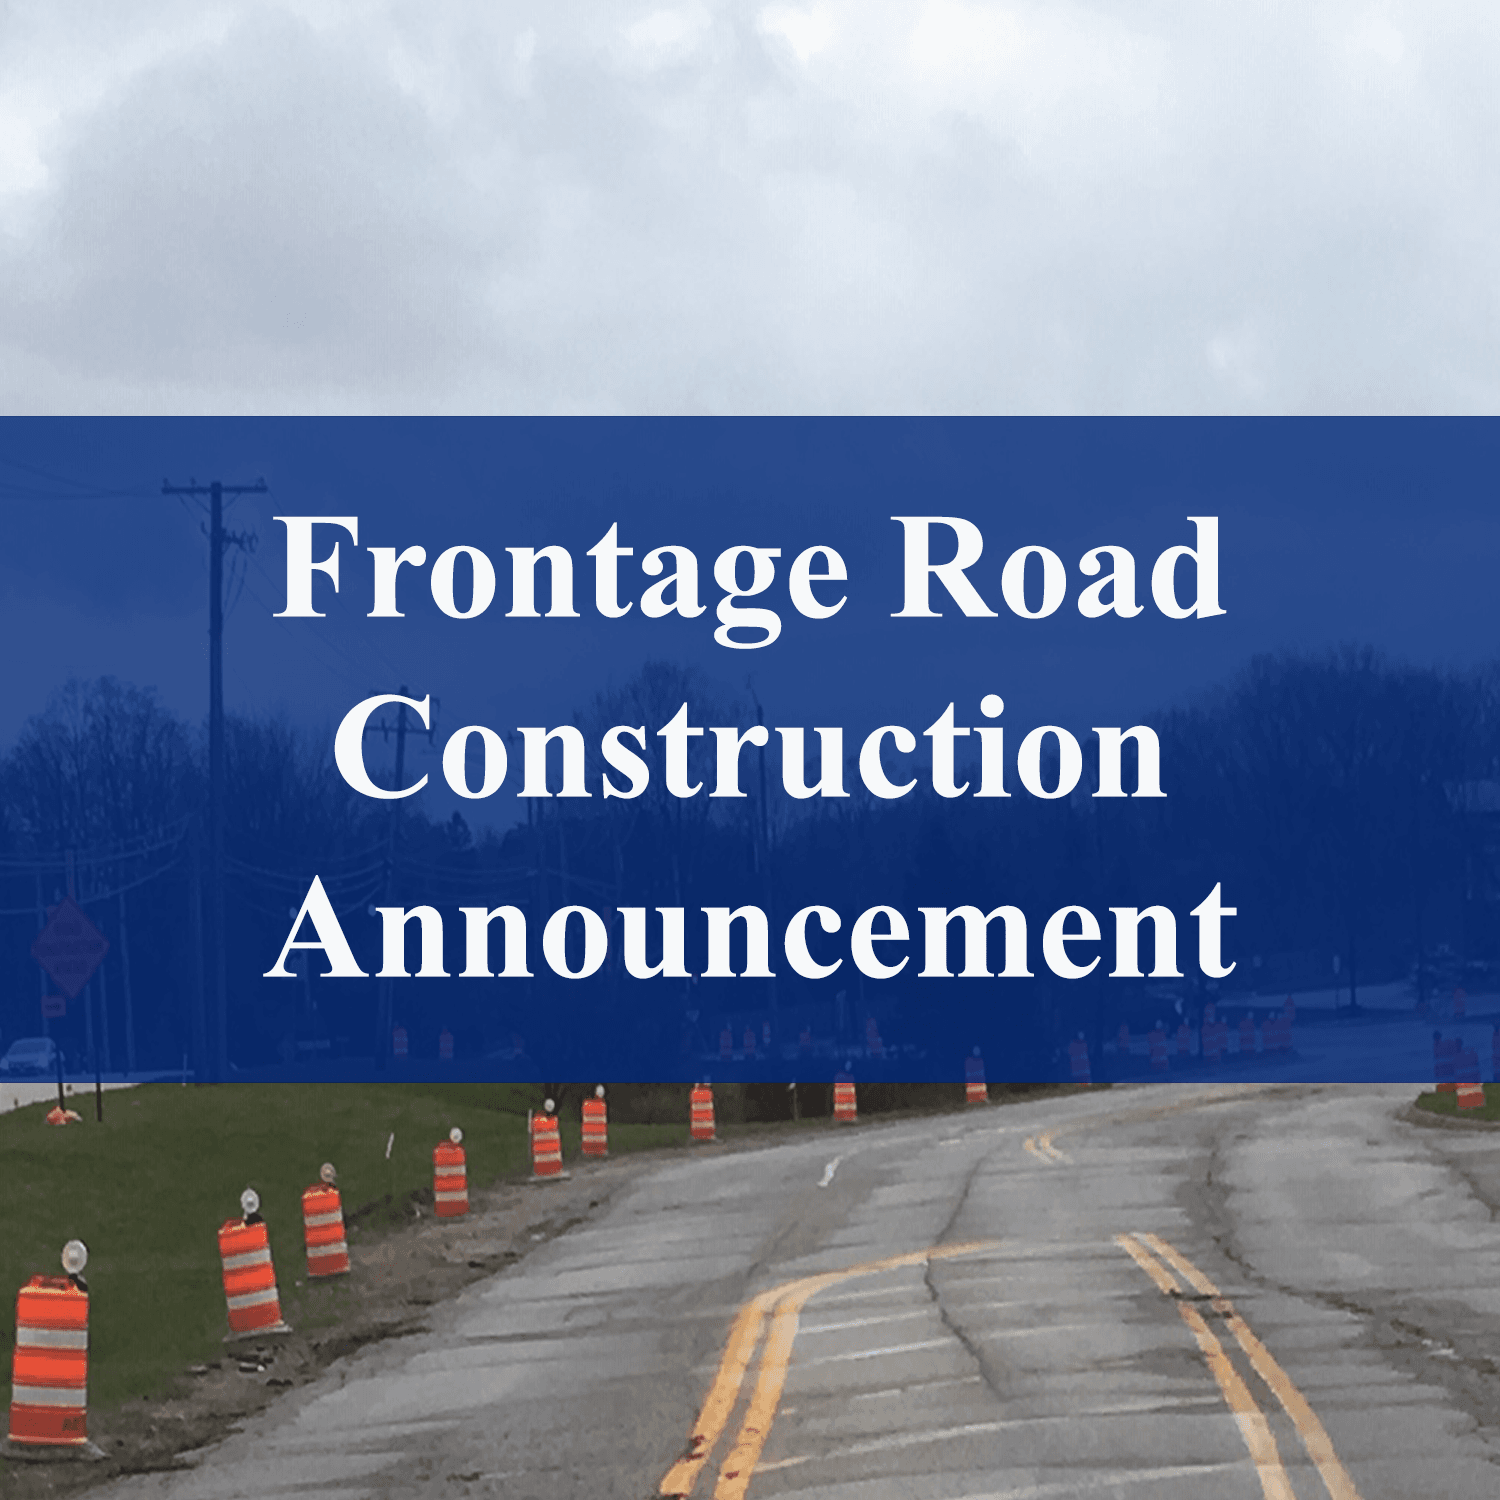 Frontage Road construction notice